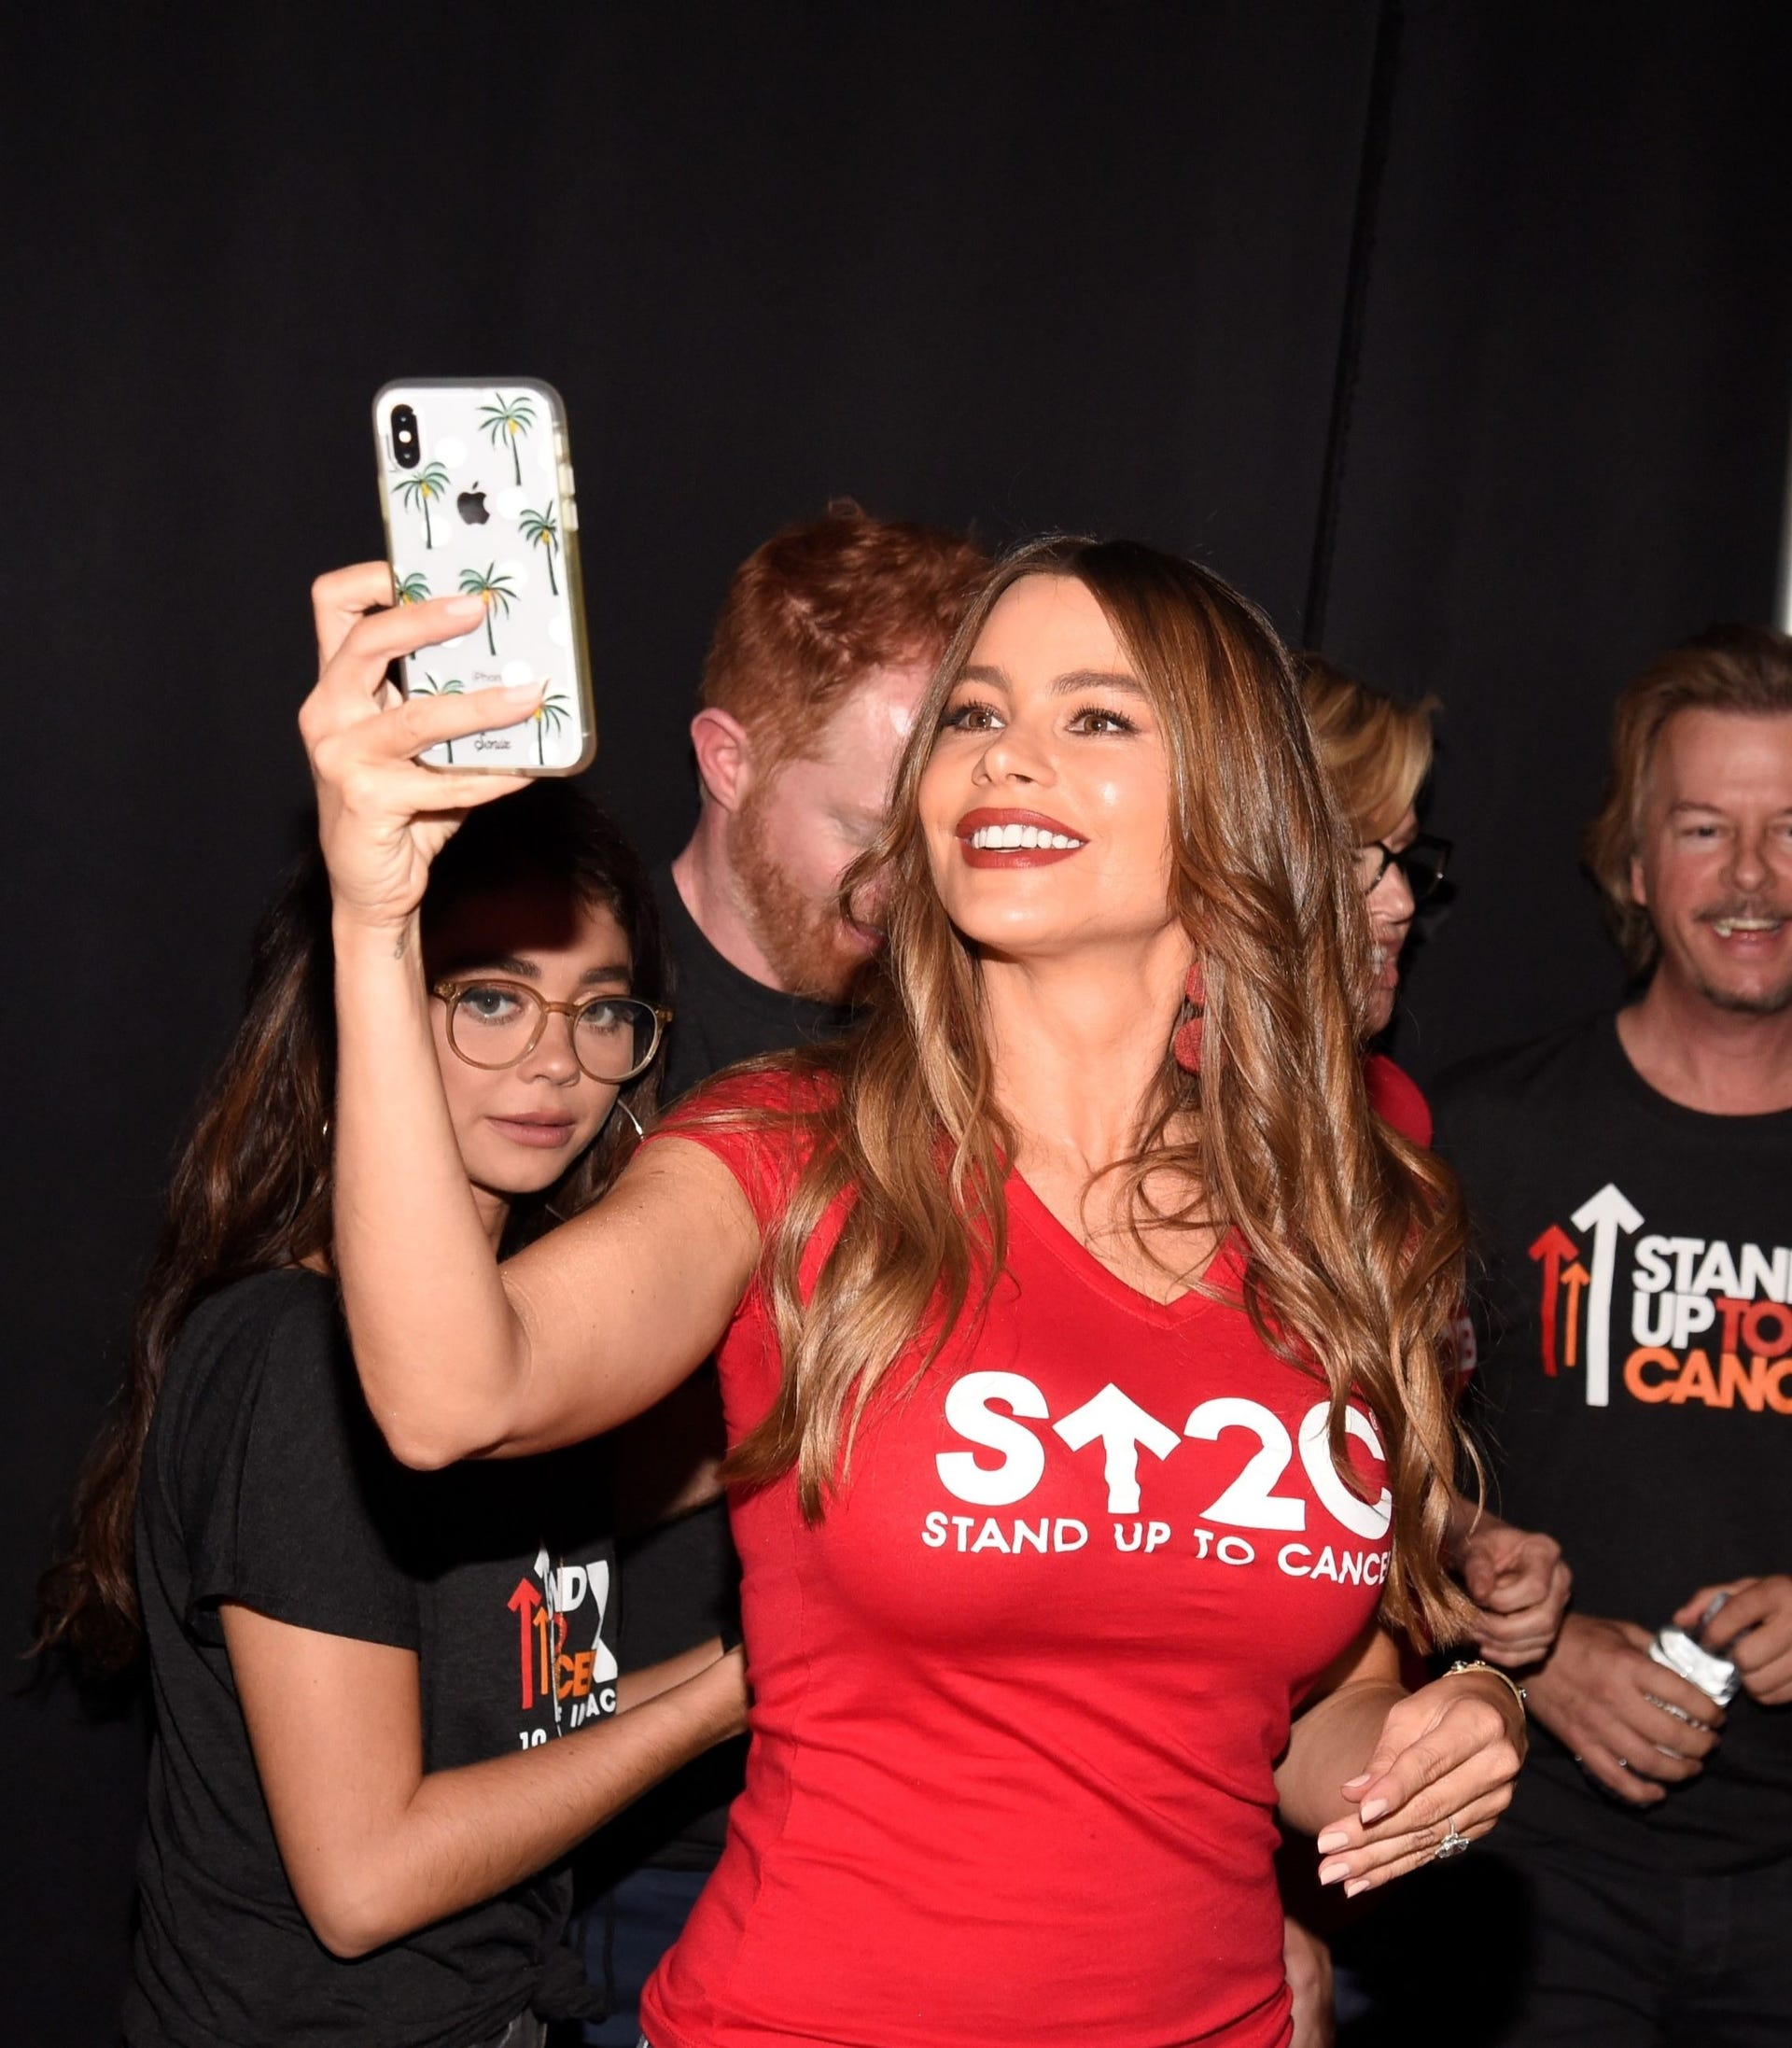 'Stand Up To Cancer': What happened backstage at the telecast